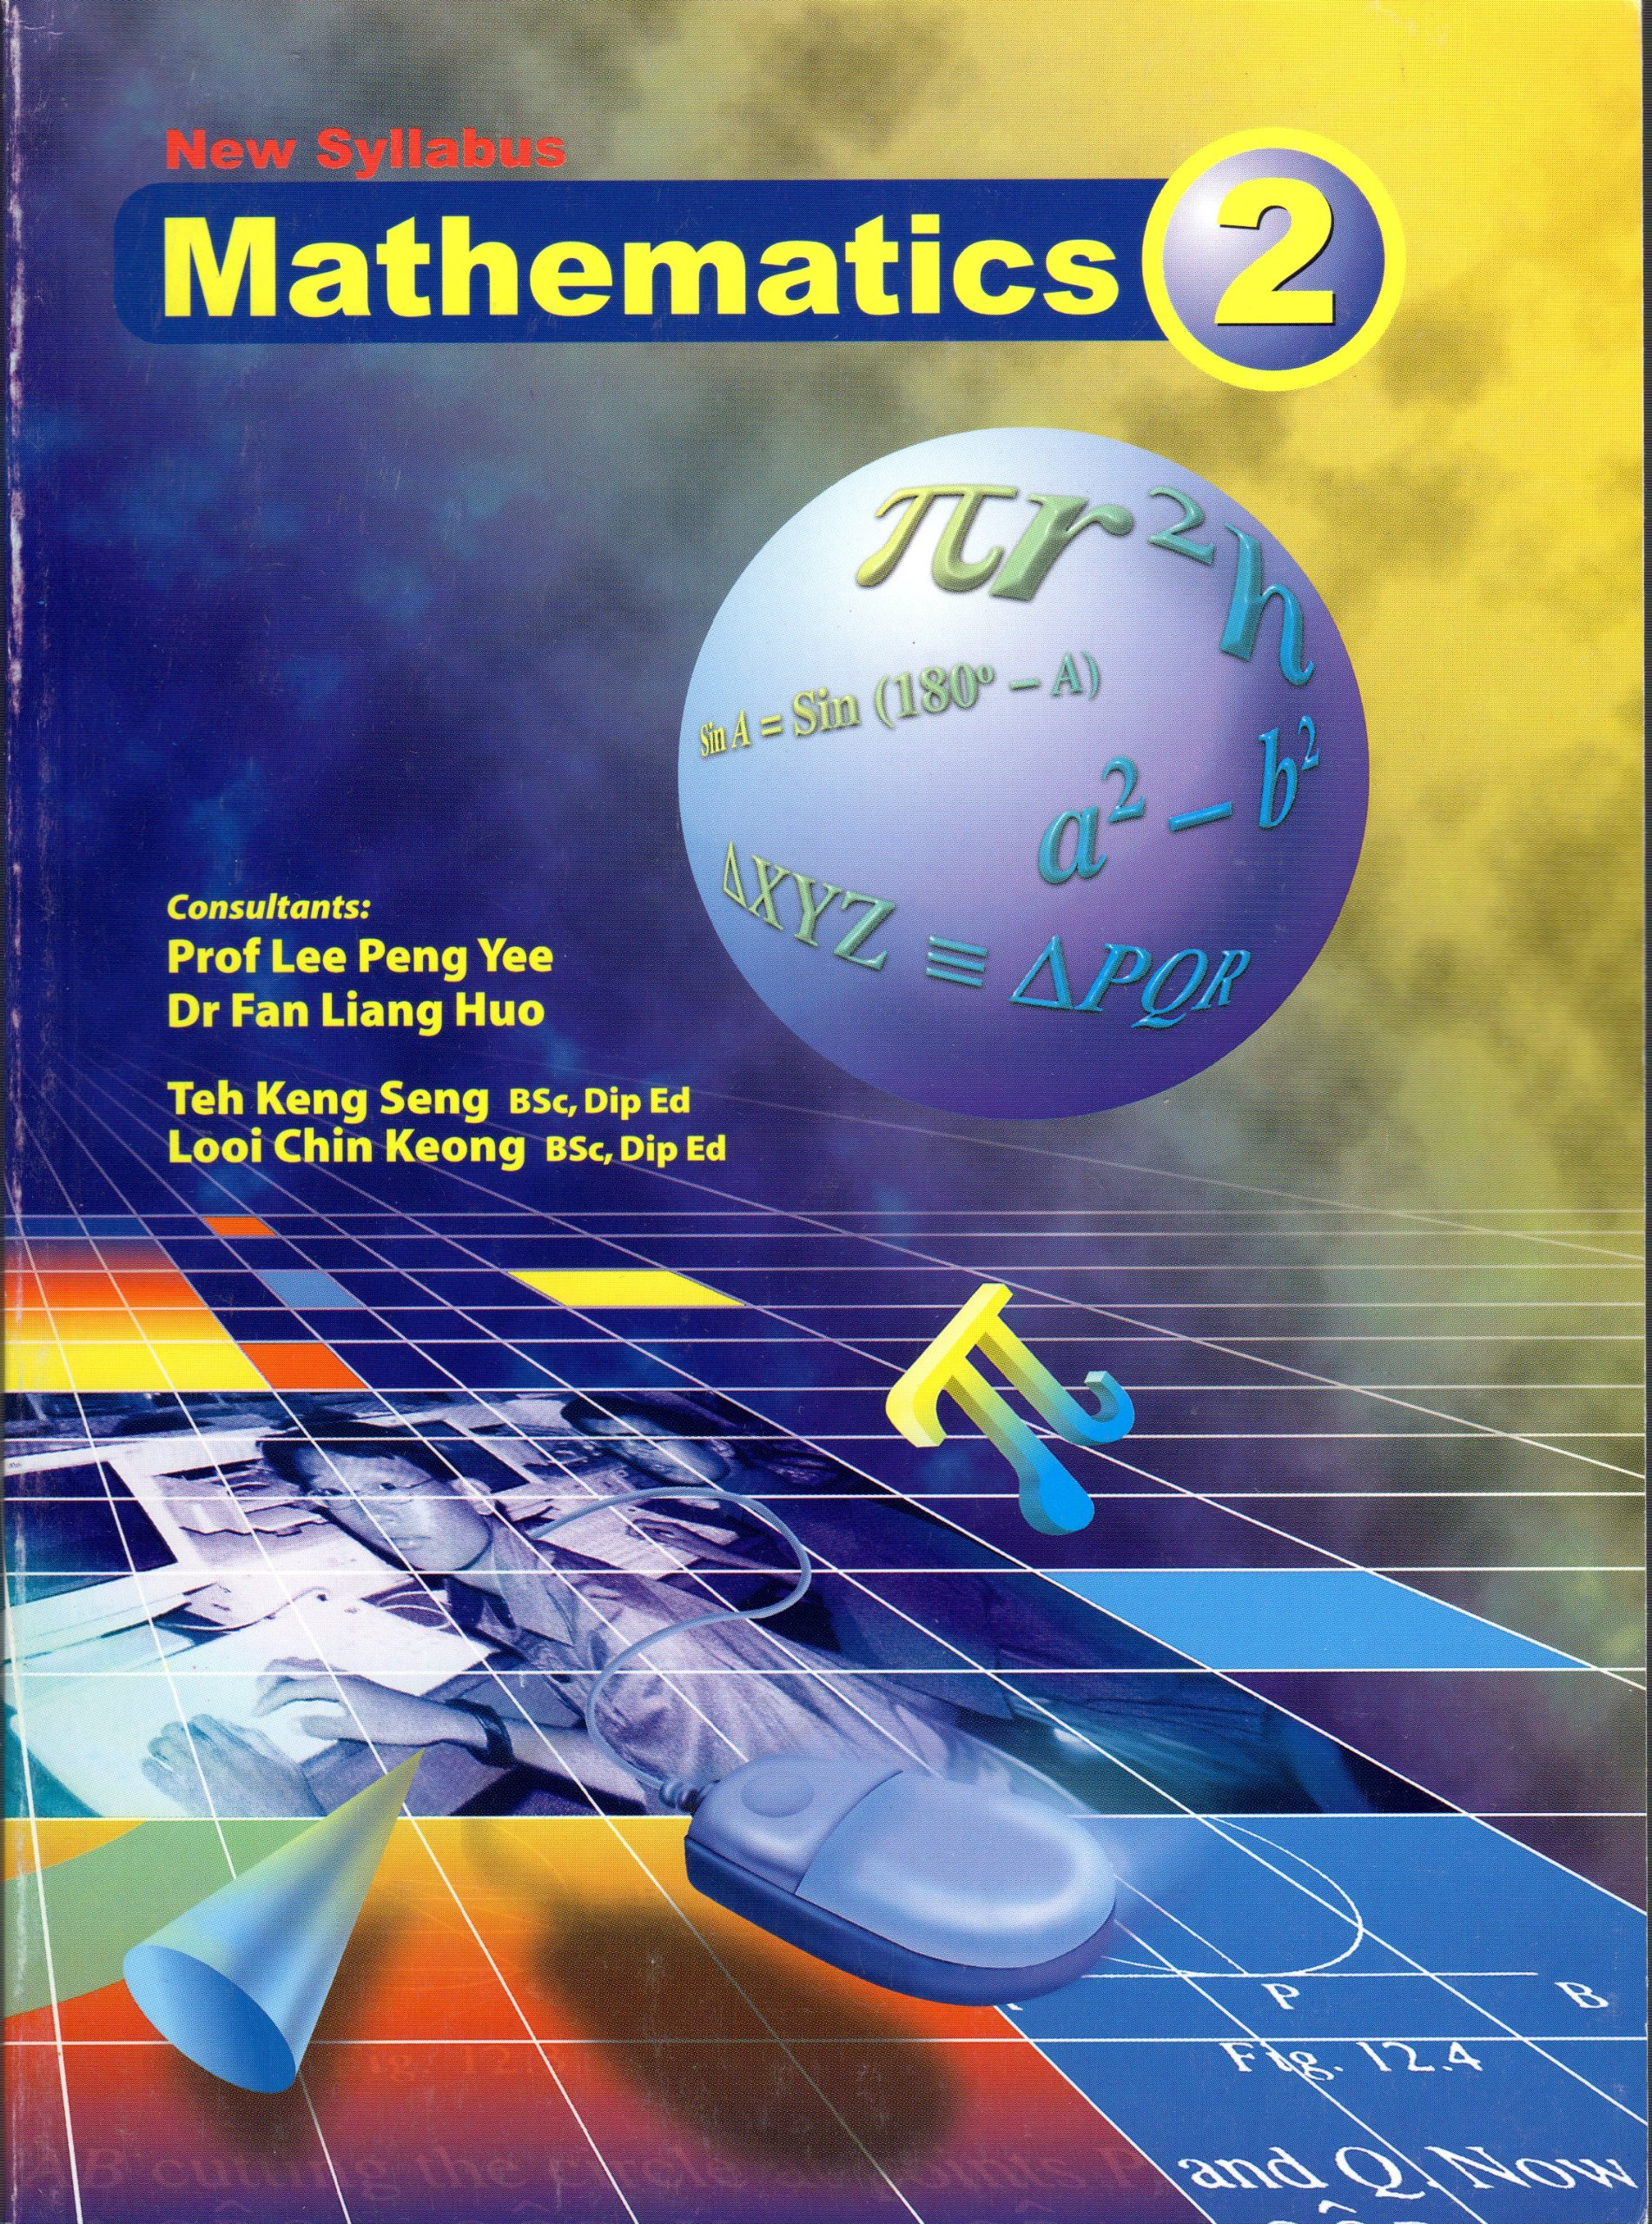 New Syllabus Mathematics 2 Prof Lee Peng Yee Dr Fan Liang Huo Teh Keng Seng Bsc Dip Ed Looi Chin Keong Bsc Dip Ed 9789812370204 Amazon Com Books